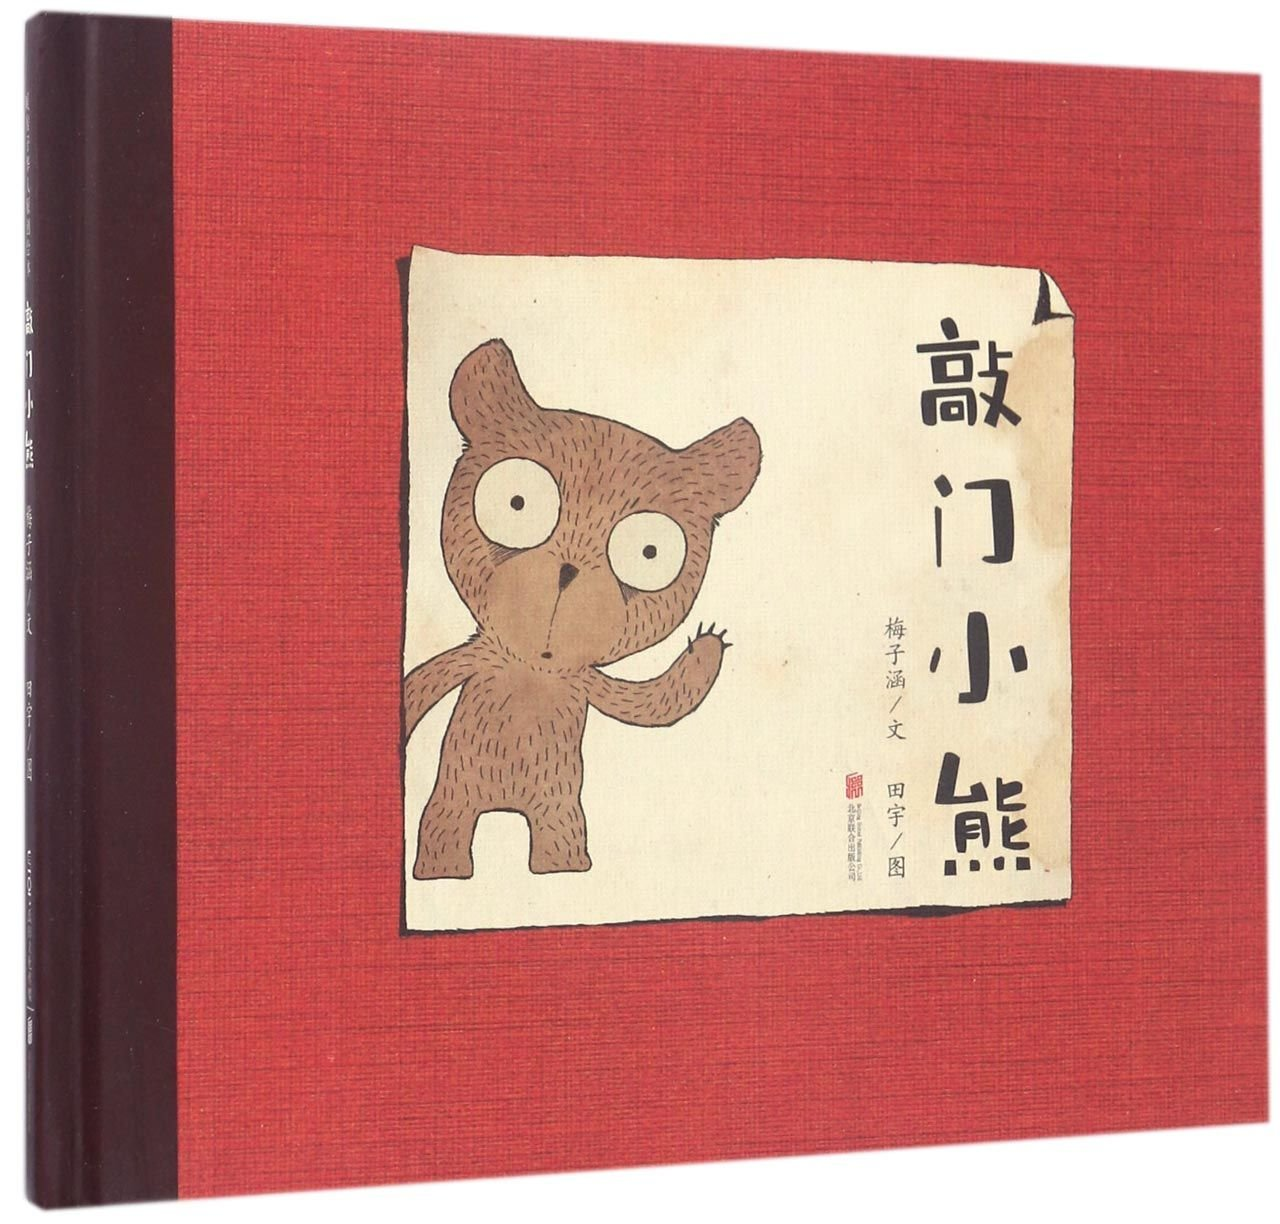 Knock Knock the Bear (Hardcover) (Chinese Edition) ebook